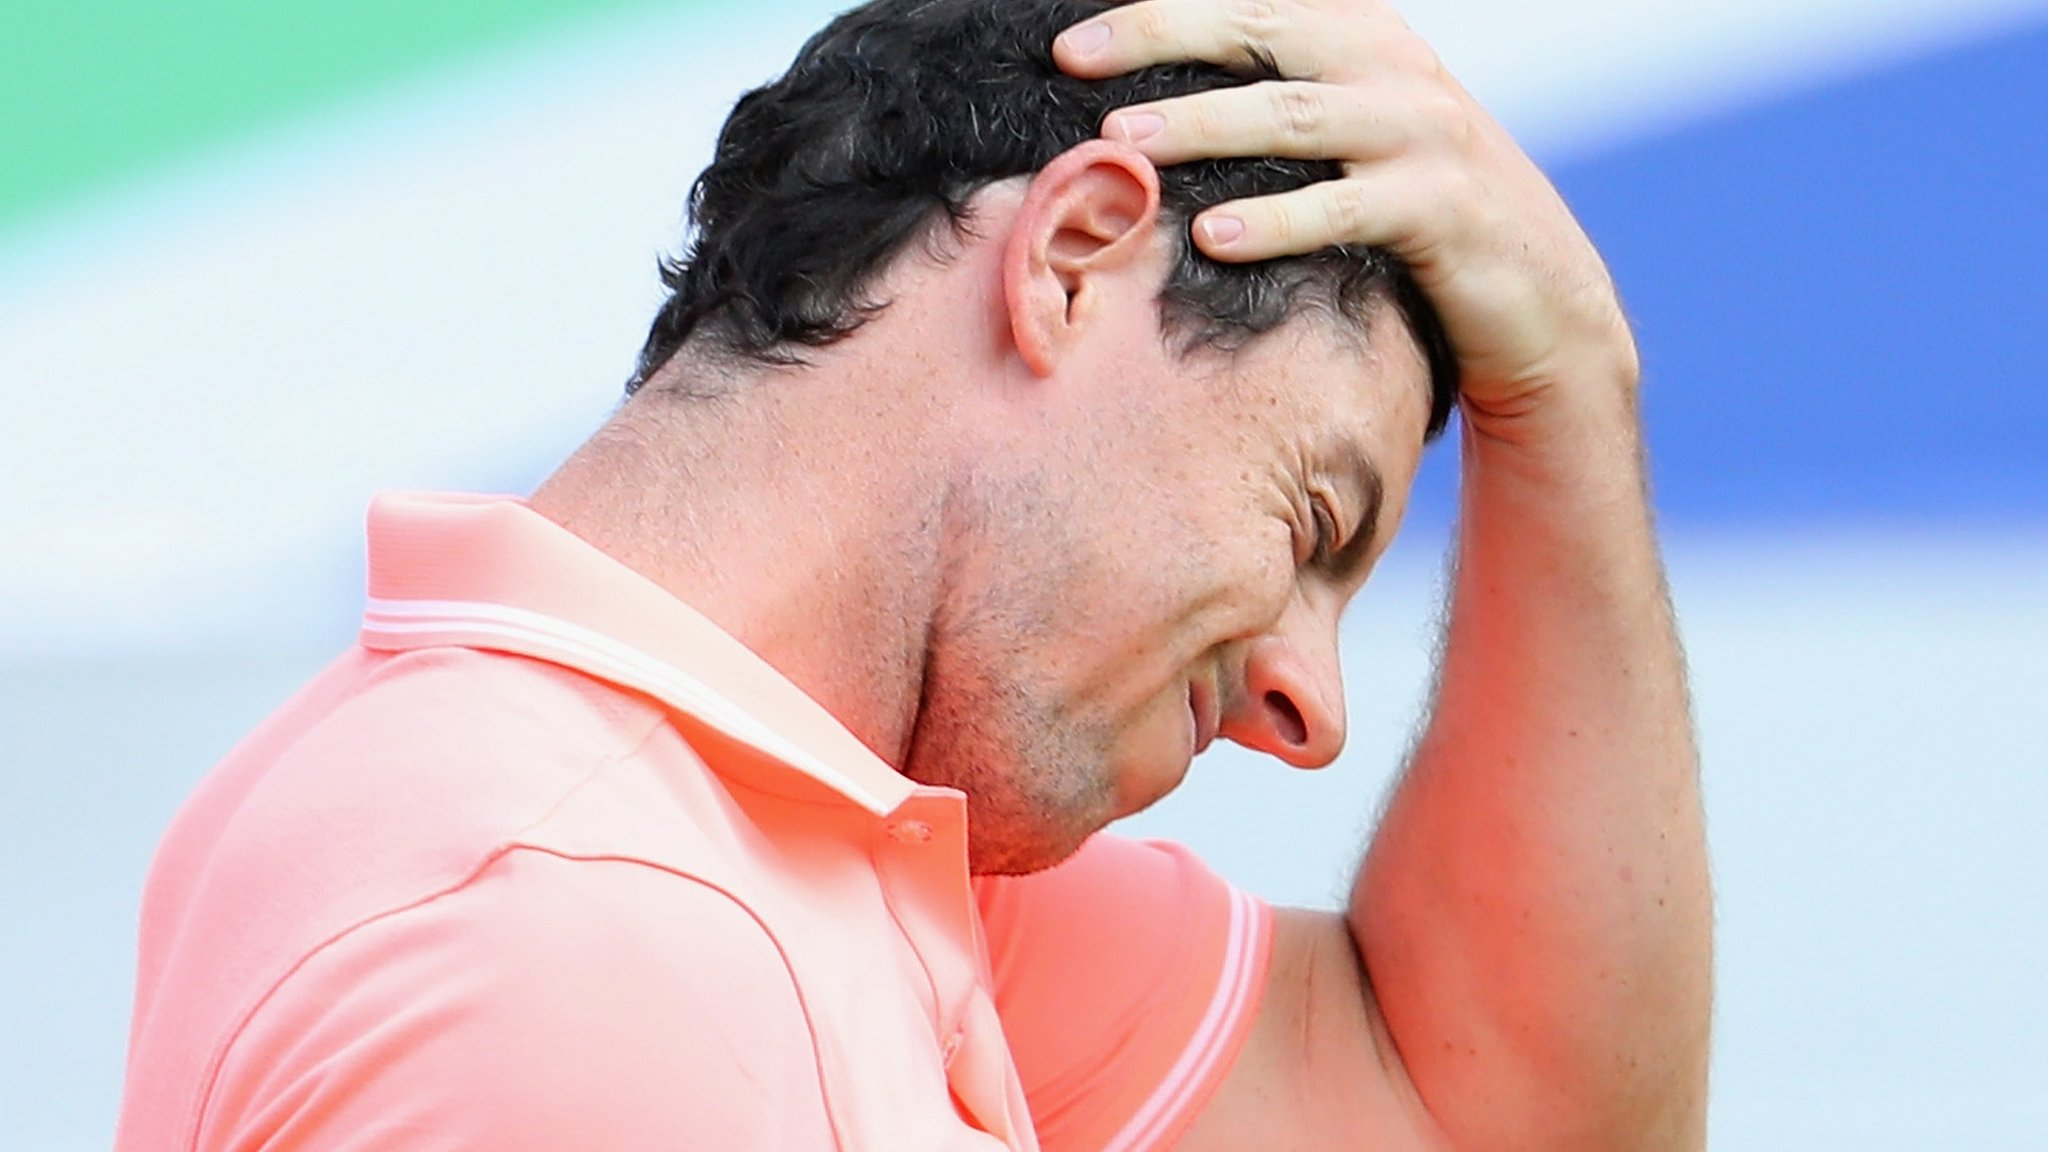 Rory McIlroy: Injured rib forces withdrawal from Abu Dhabi Championship